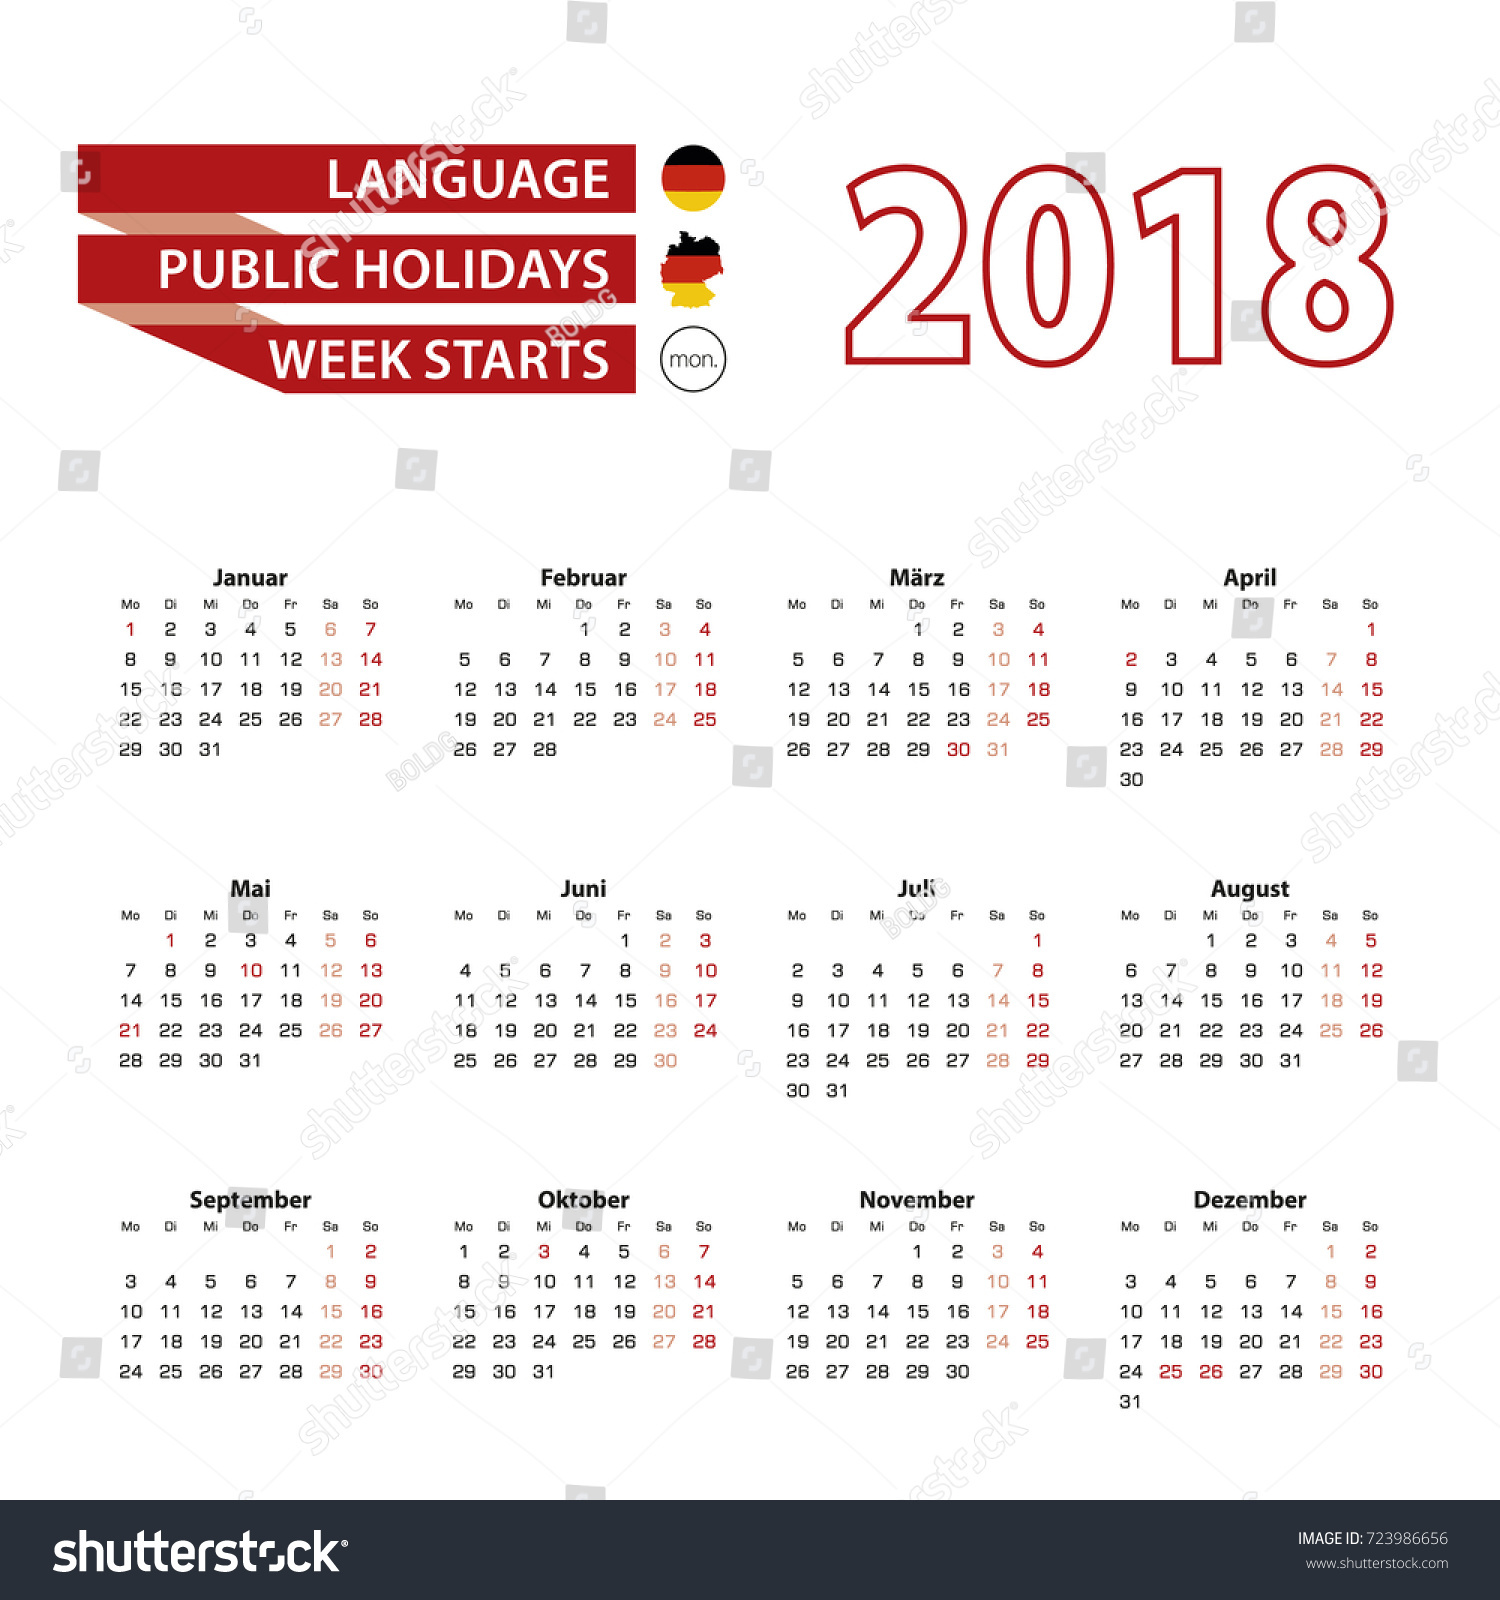 Calendar 2018 Germany Language Public Holidays Stock Vektorgrafik